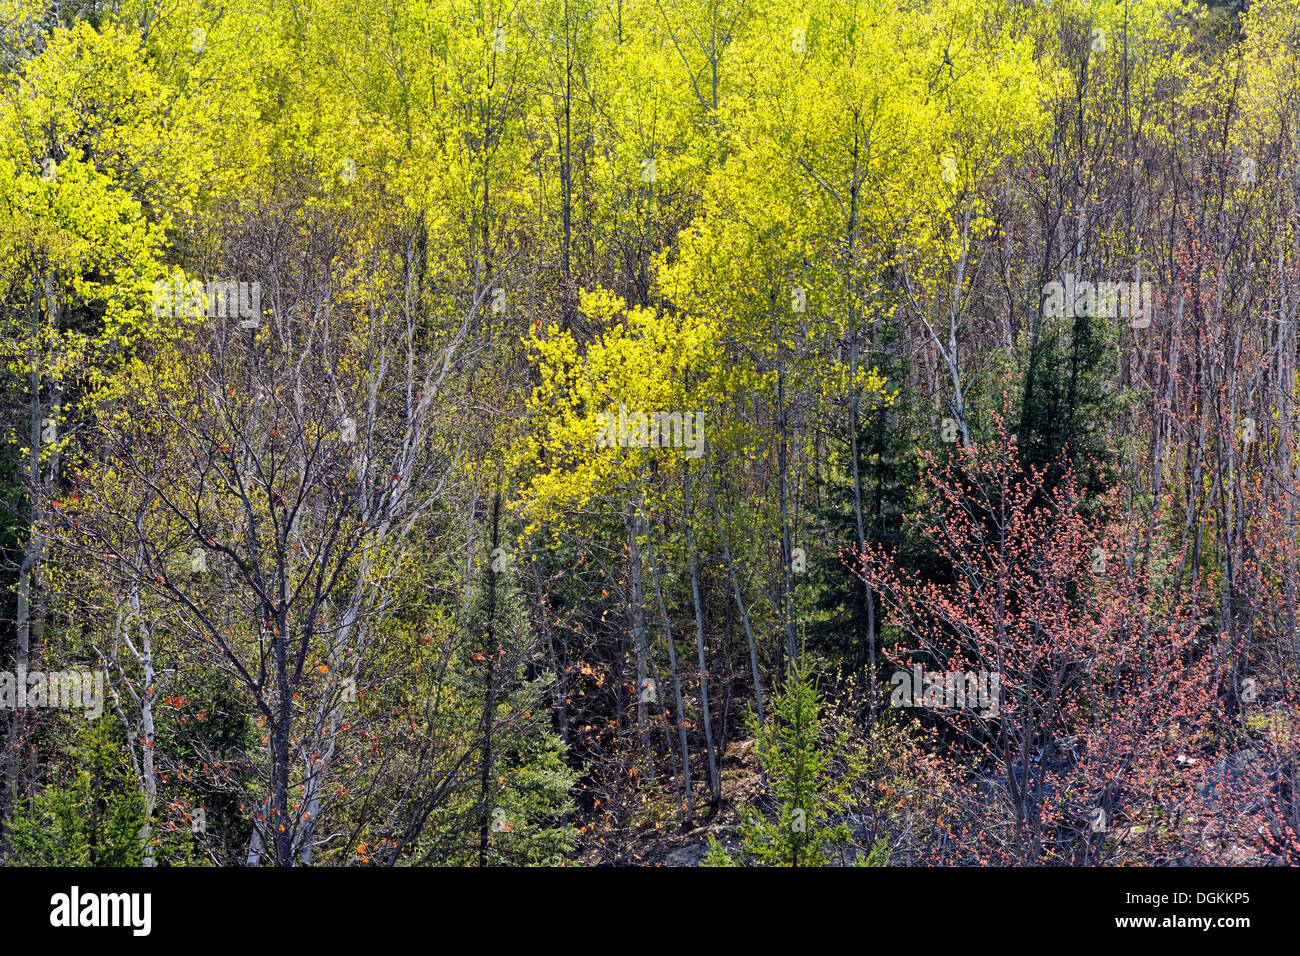 Spruces and hardwoods in early spring Greater Sudbury Ontario Canada - Stock Image